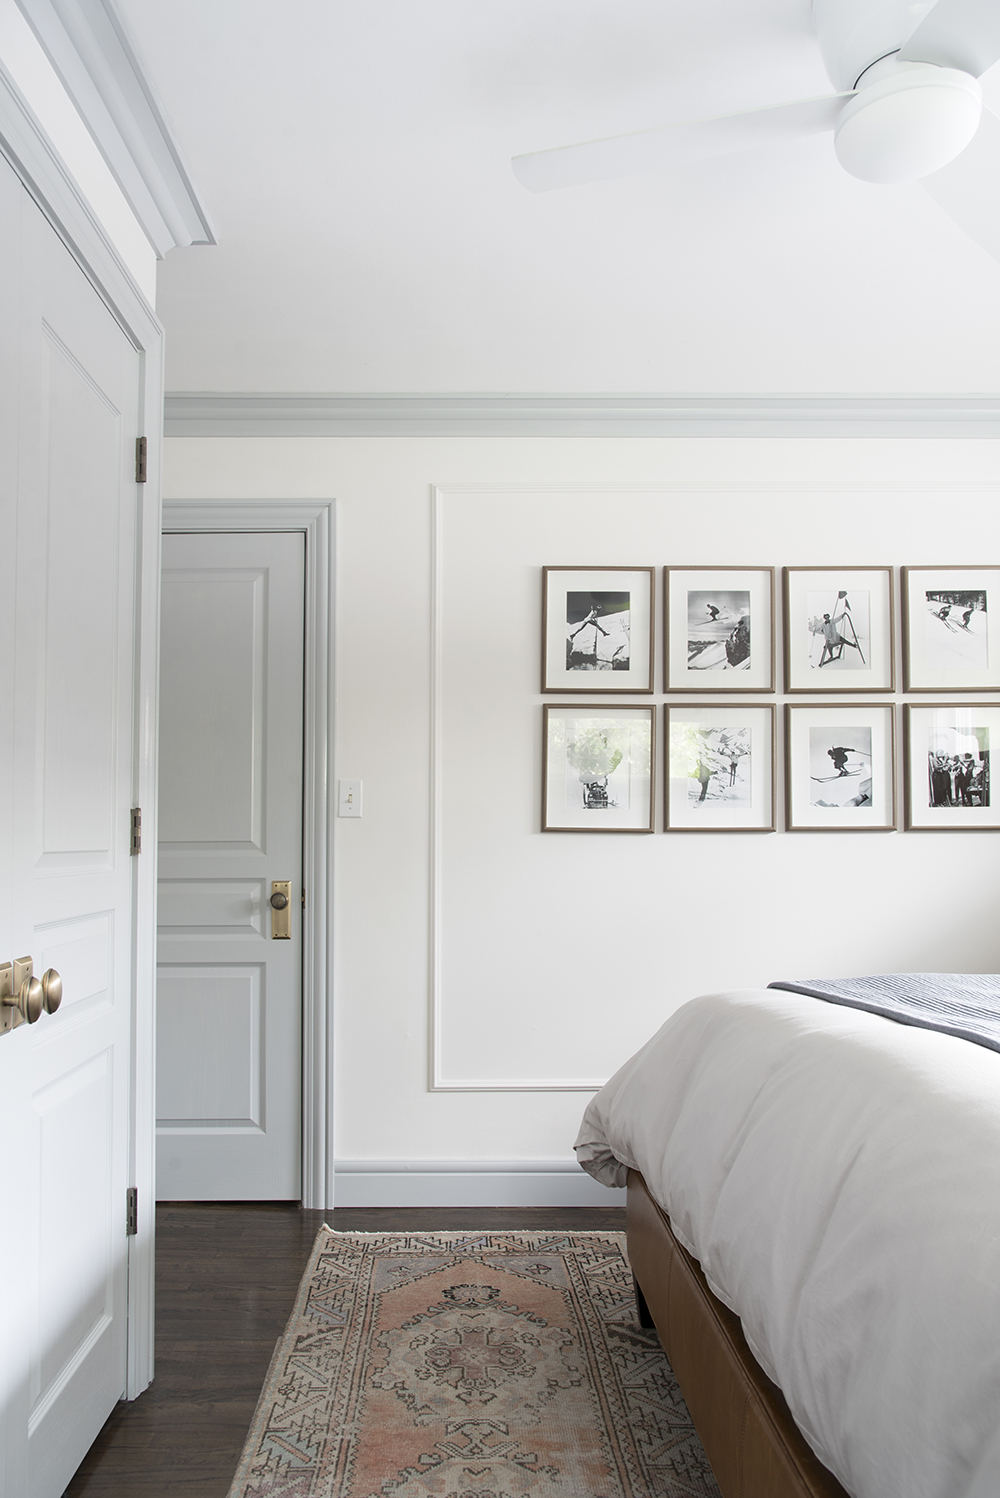 How to Design A Cohesive Home That Flows - roomfortuesday.com